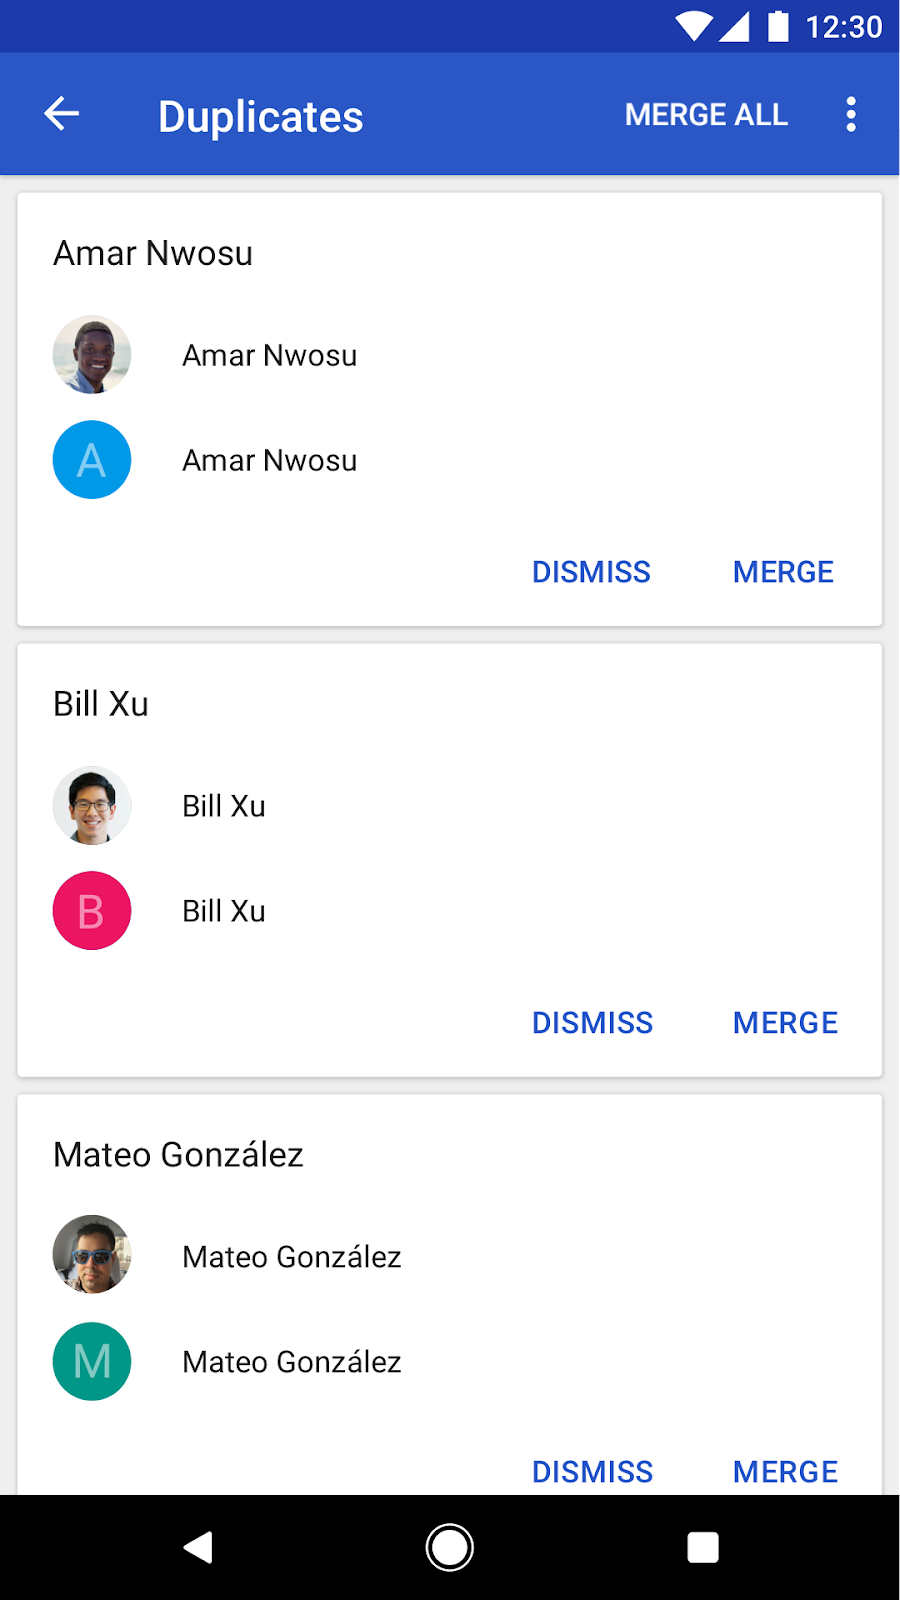 Contacts Android app - new features - screenshot of merged duplicates